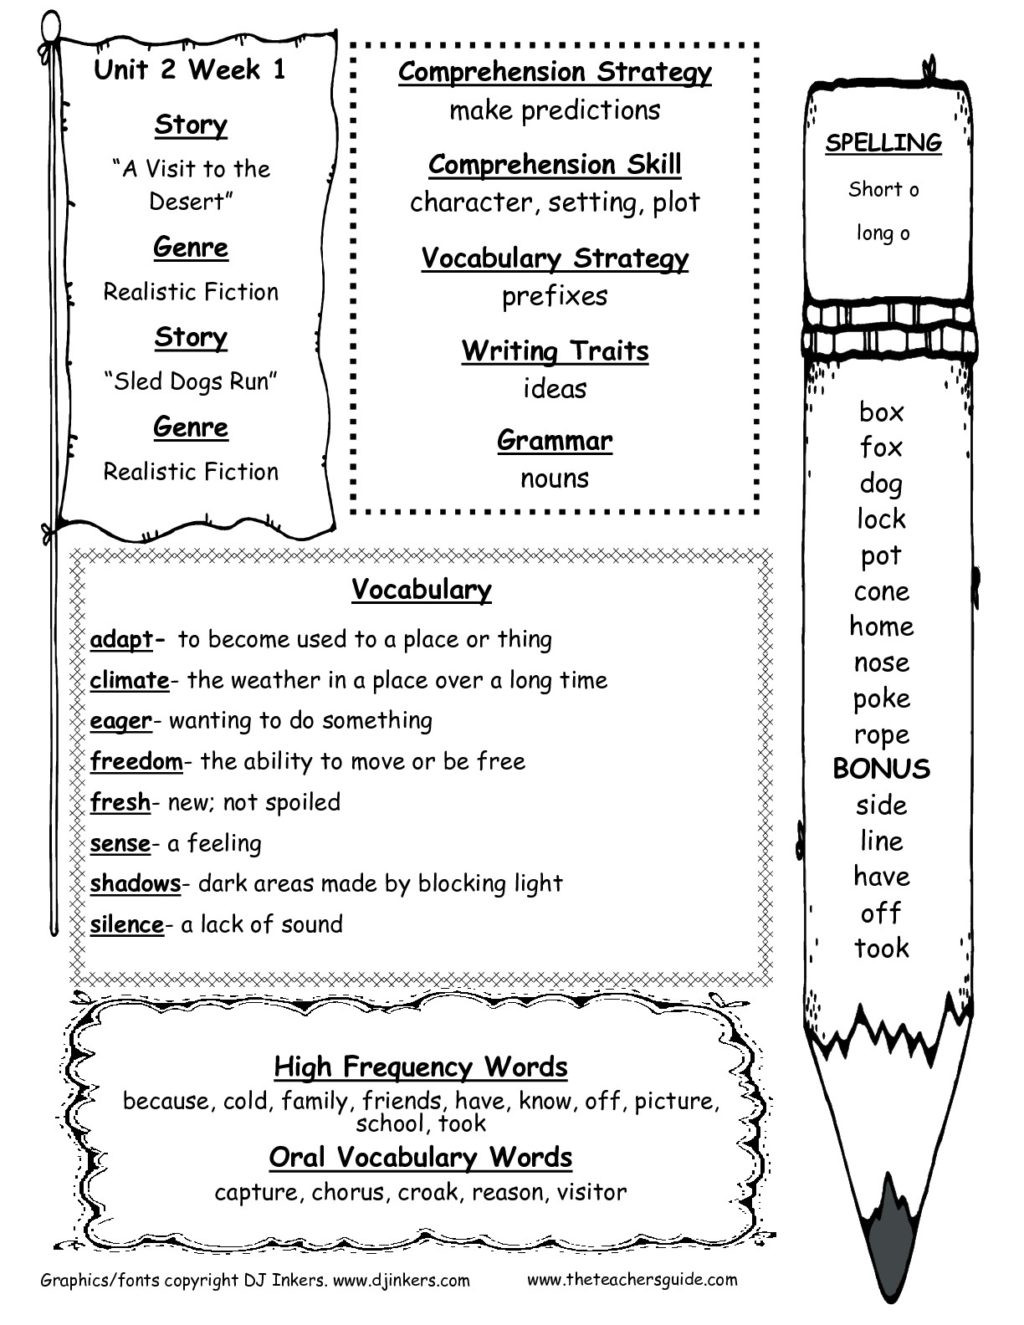 Plot Worksheets 2nd Grade Worksheet Free Readings 2nd Grade Printable Responding to